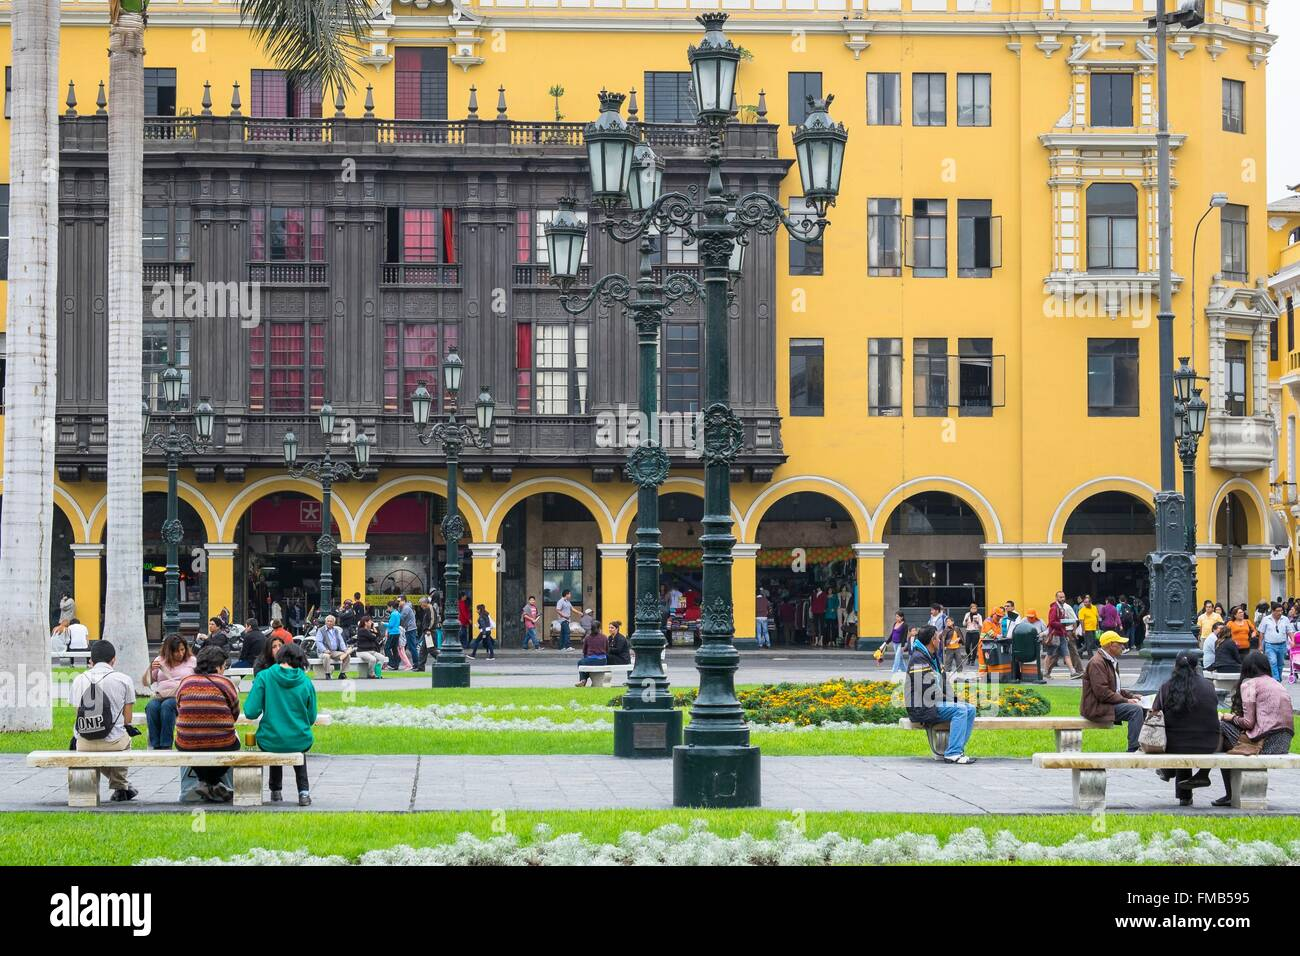 Peru, Lima, the historic centre (listed as World Heritage by UNESCO), Plaza de Armas or Plaza Mayor lined with arcades - Stock Image